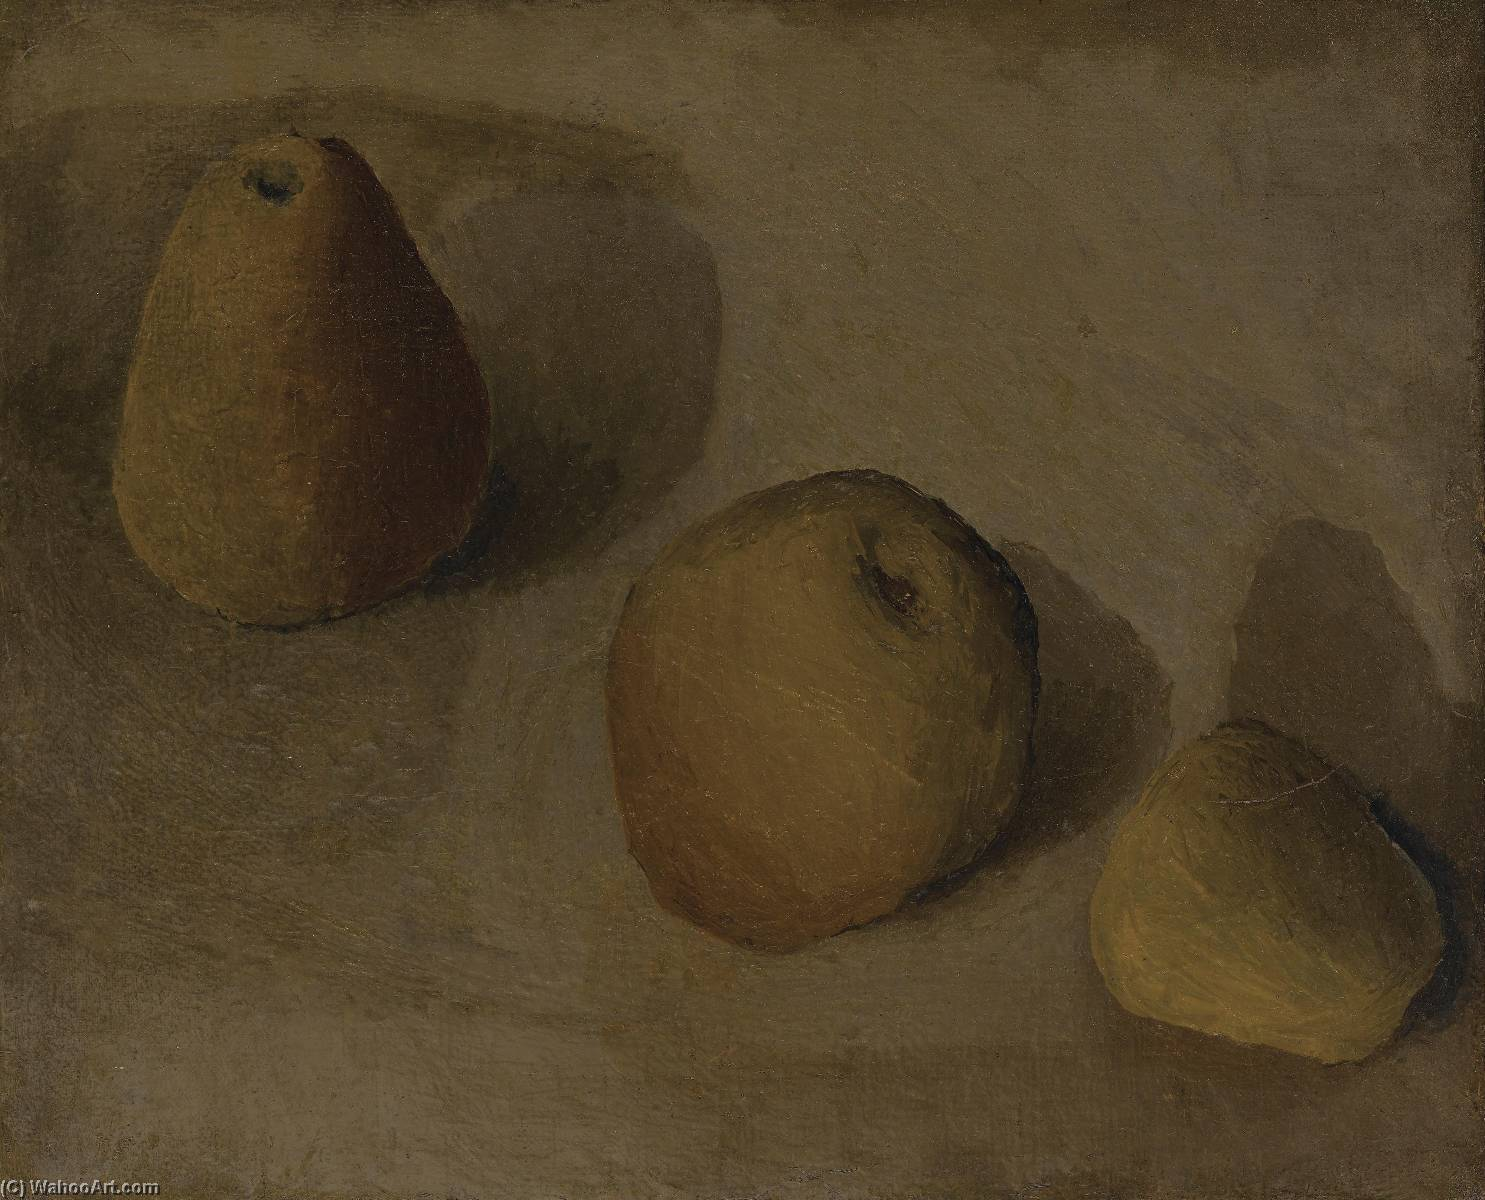 Still Life with Apples and Pears, Oil On Canvas by Pavel Fedorovich Tchelitchew